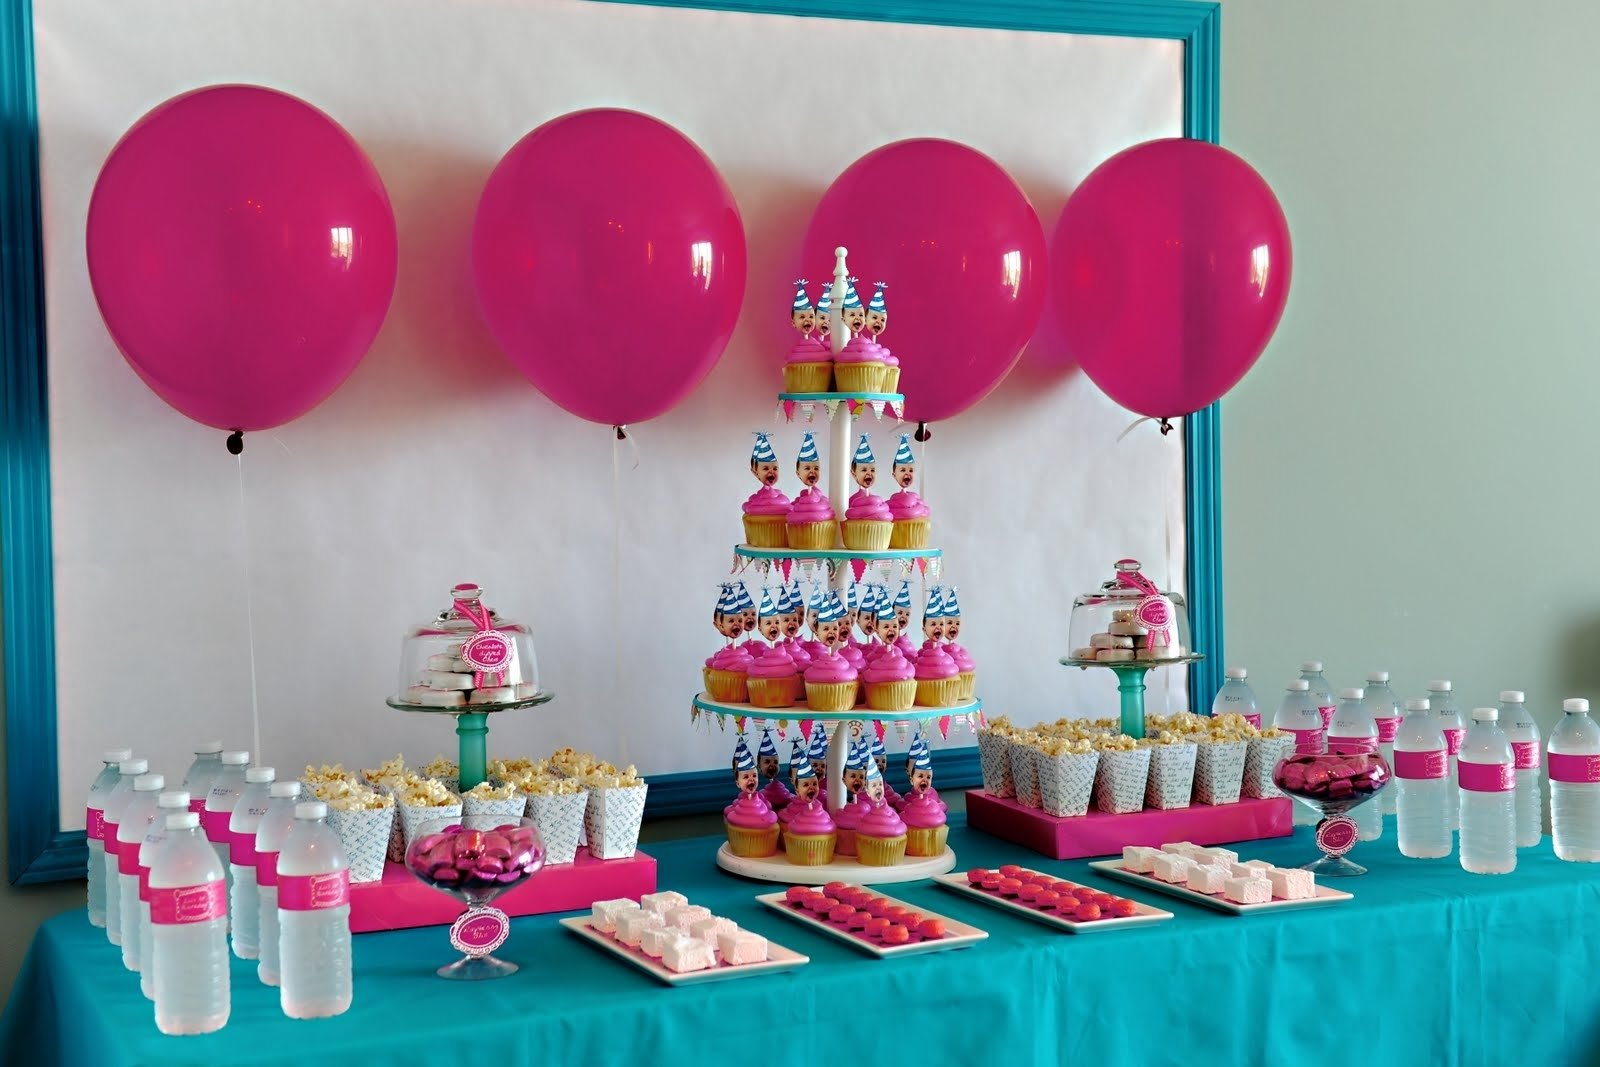 10 Famous 9 Year Old Birthday Party Ideas Girl themes birthday 2 year old birthday party ideas for a boy together 2020